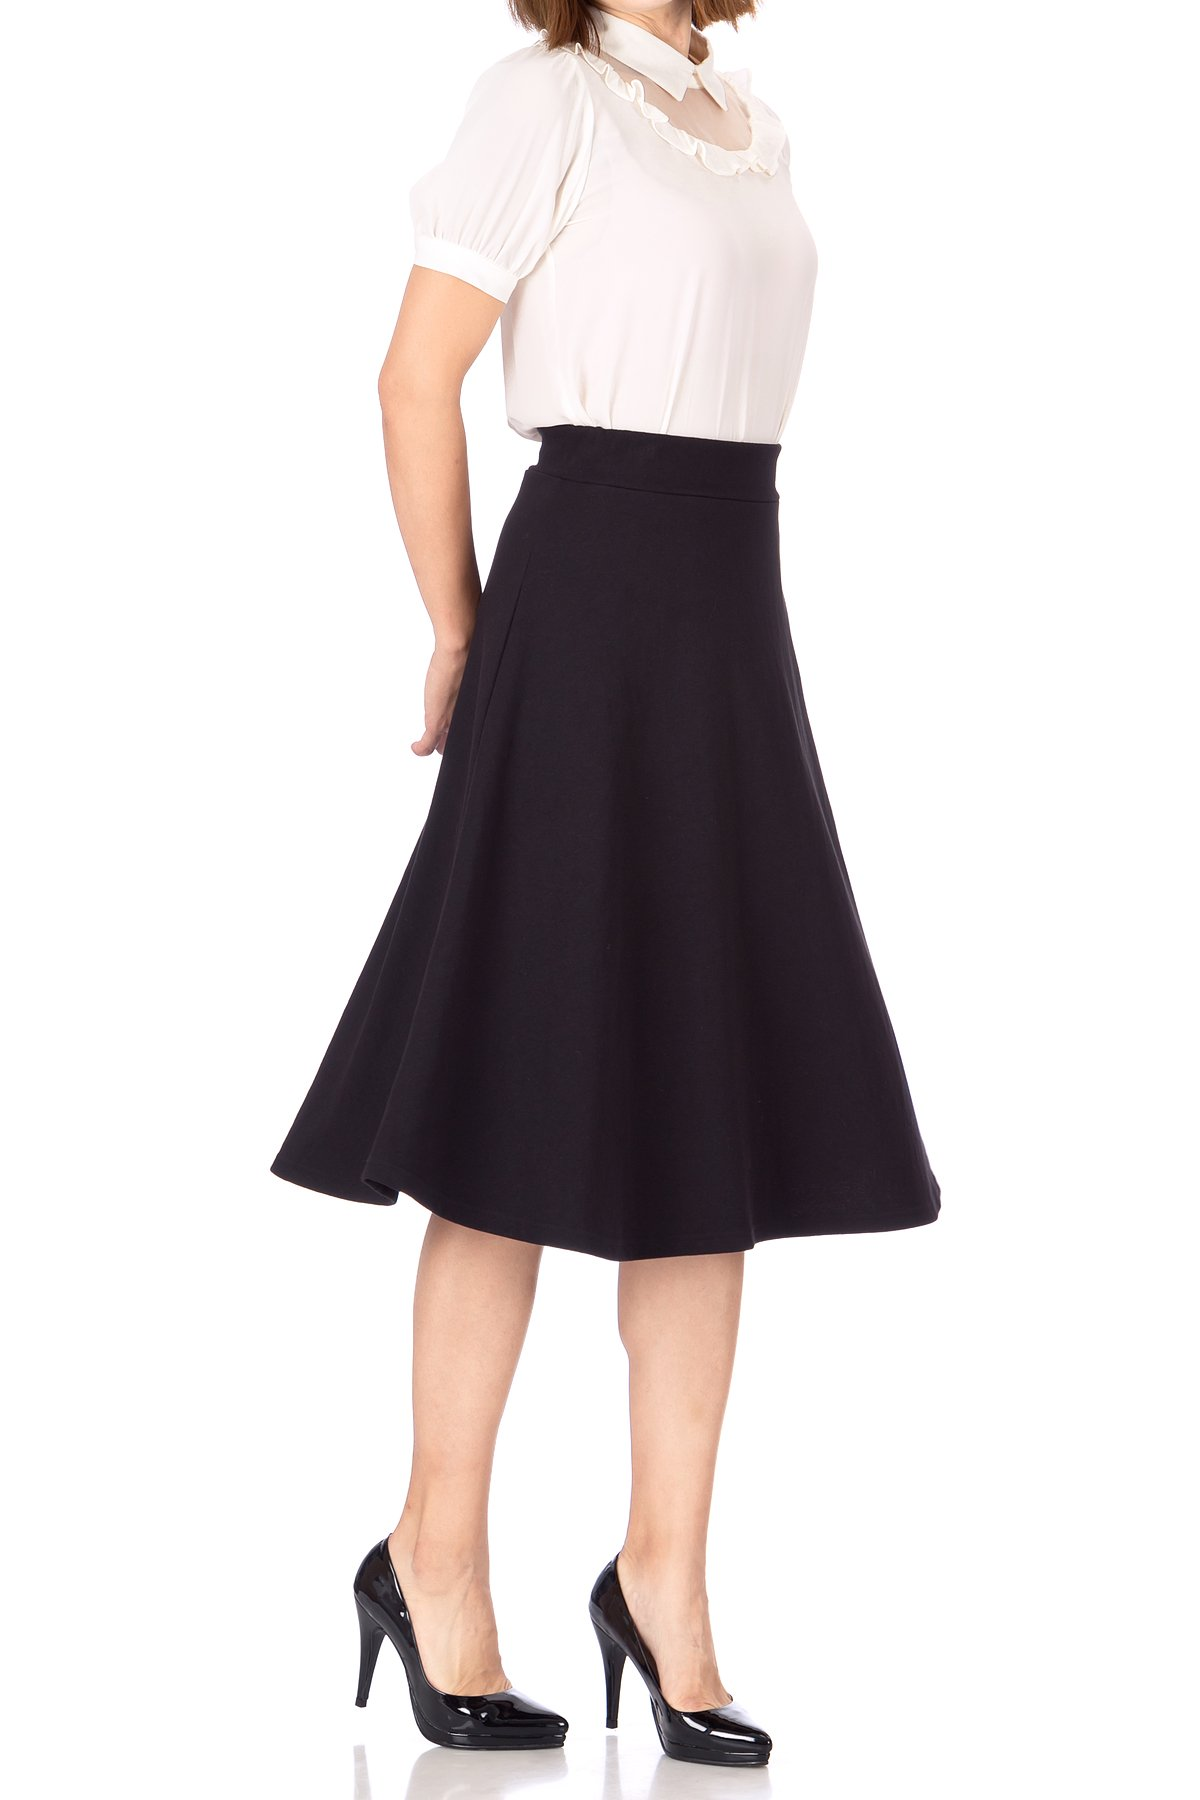 Everyday High Waist A Line Flared Skater Midi Skirt Black 01 1